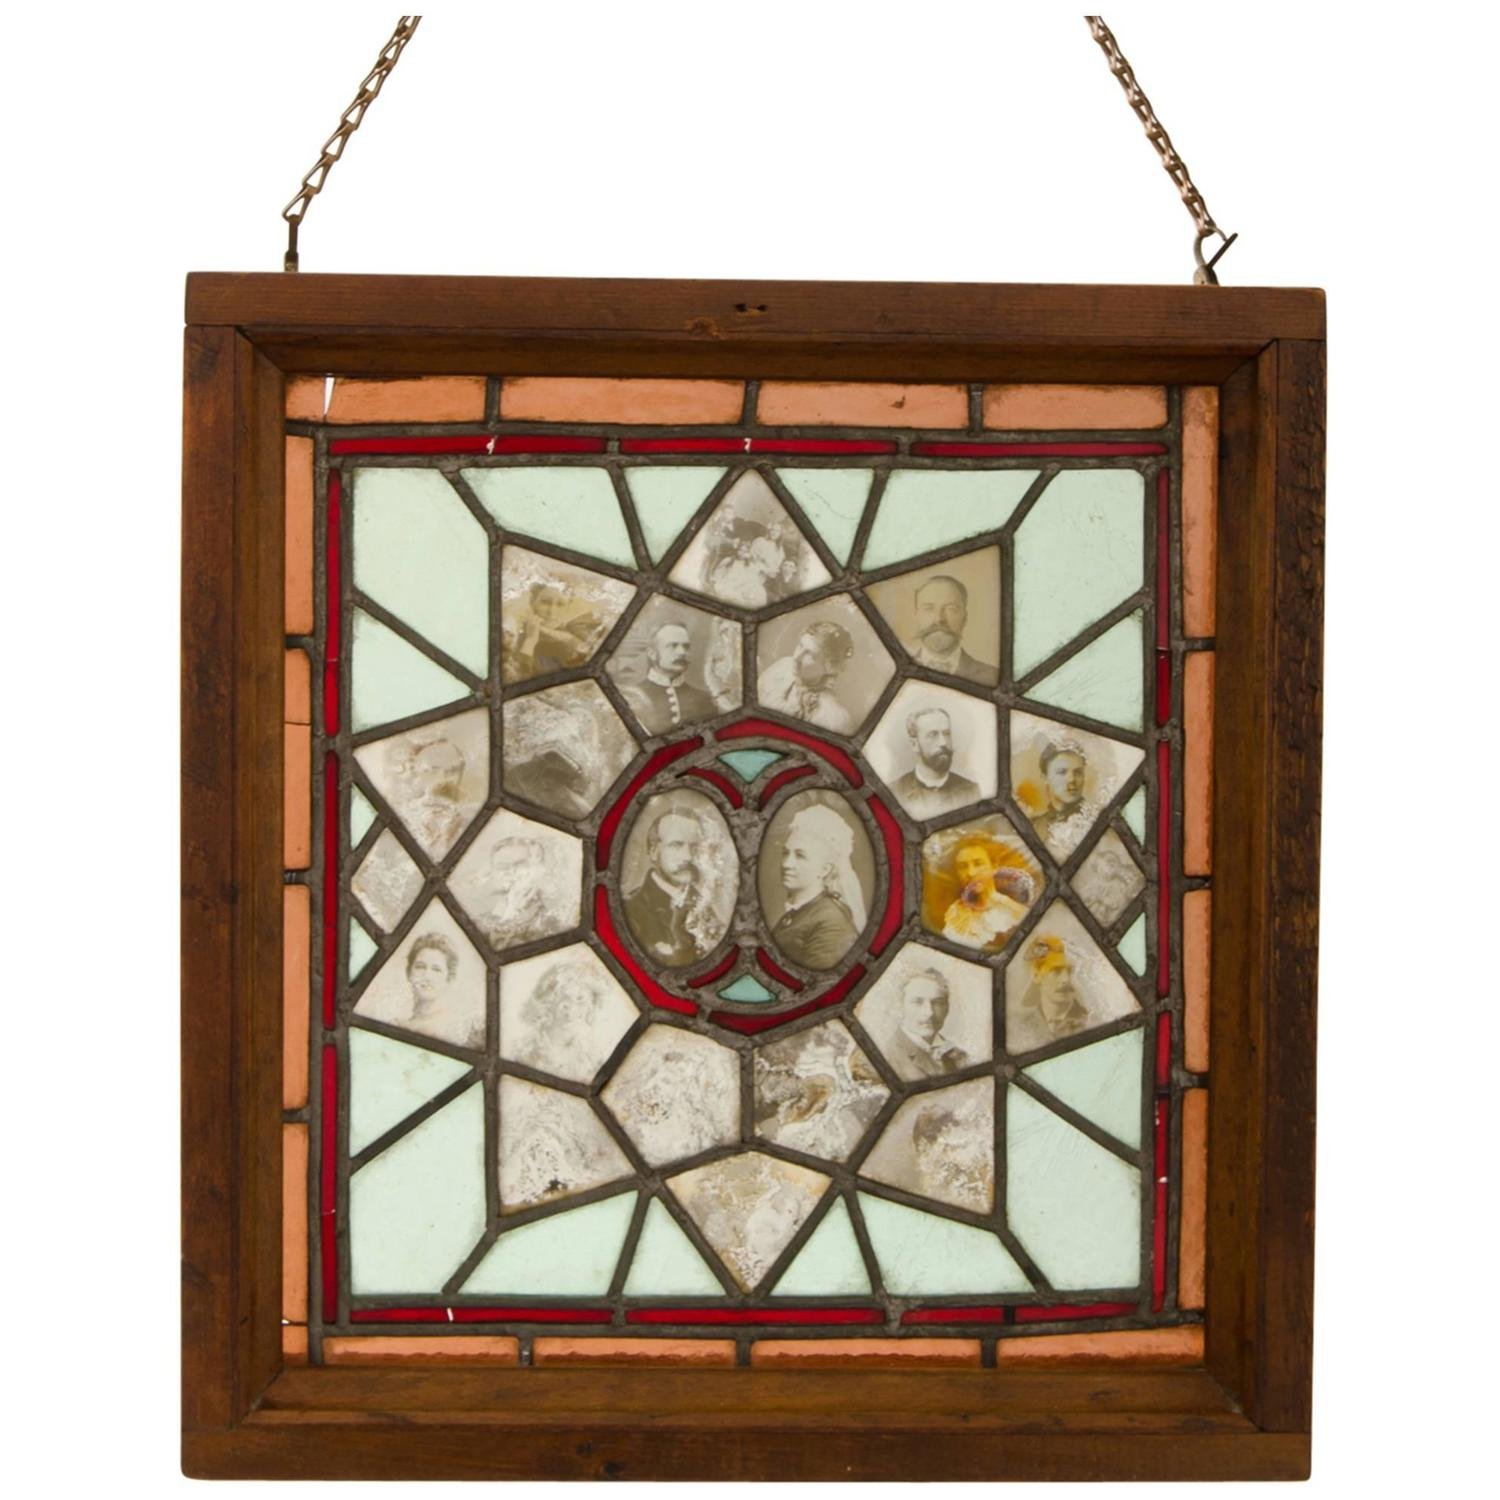 Incredible Stained Glass Window With Ambrotype Family Tree